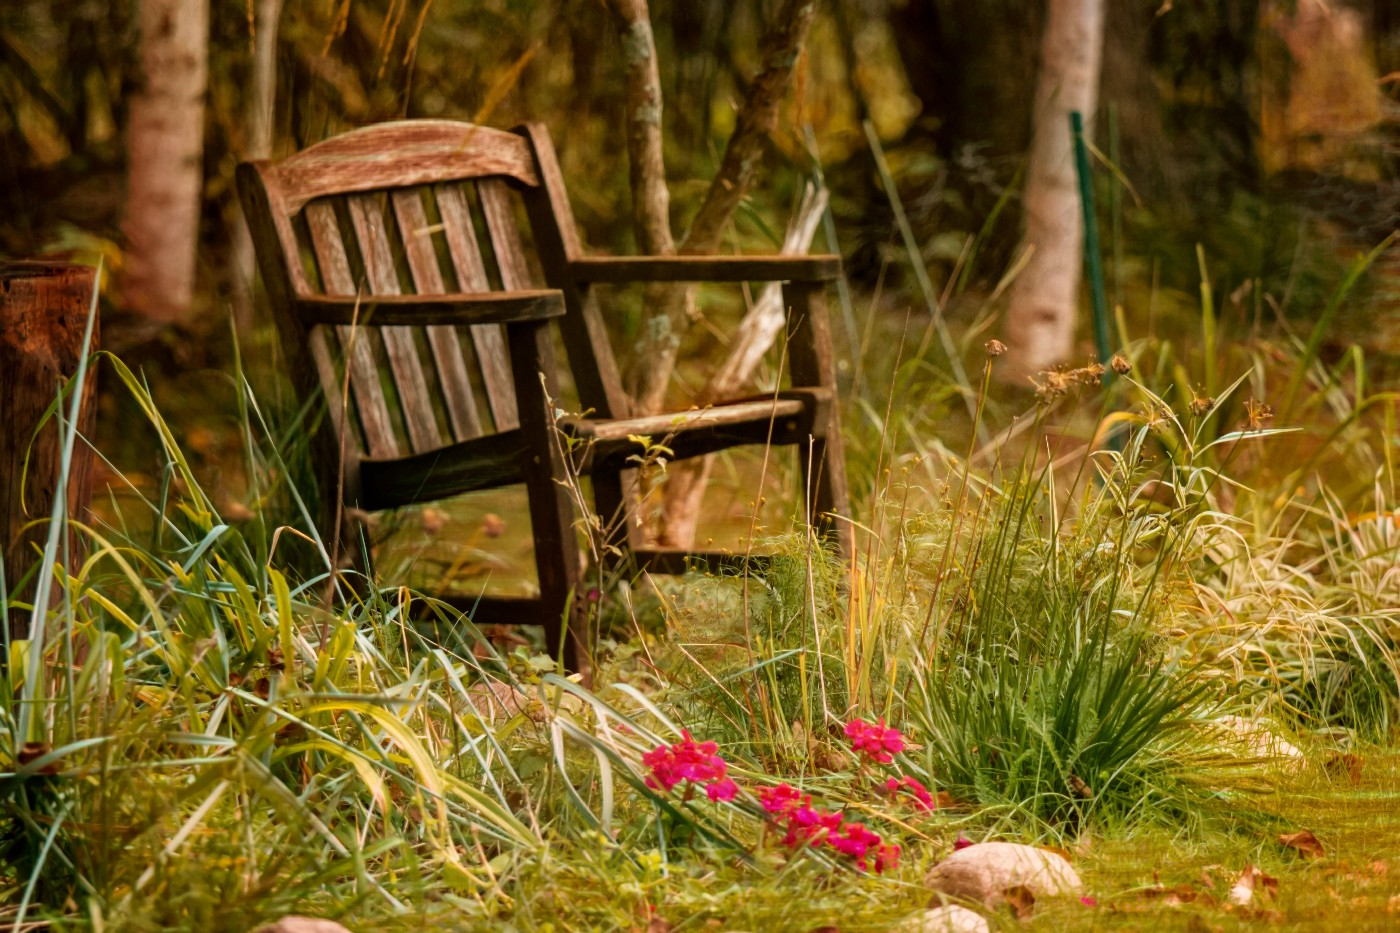 an old rocking chair in an unkempt garden. In the front is some beautiful pink flowers. The chair seems to be waiting for someone.